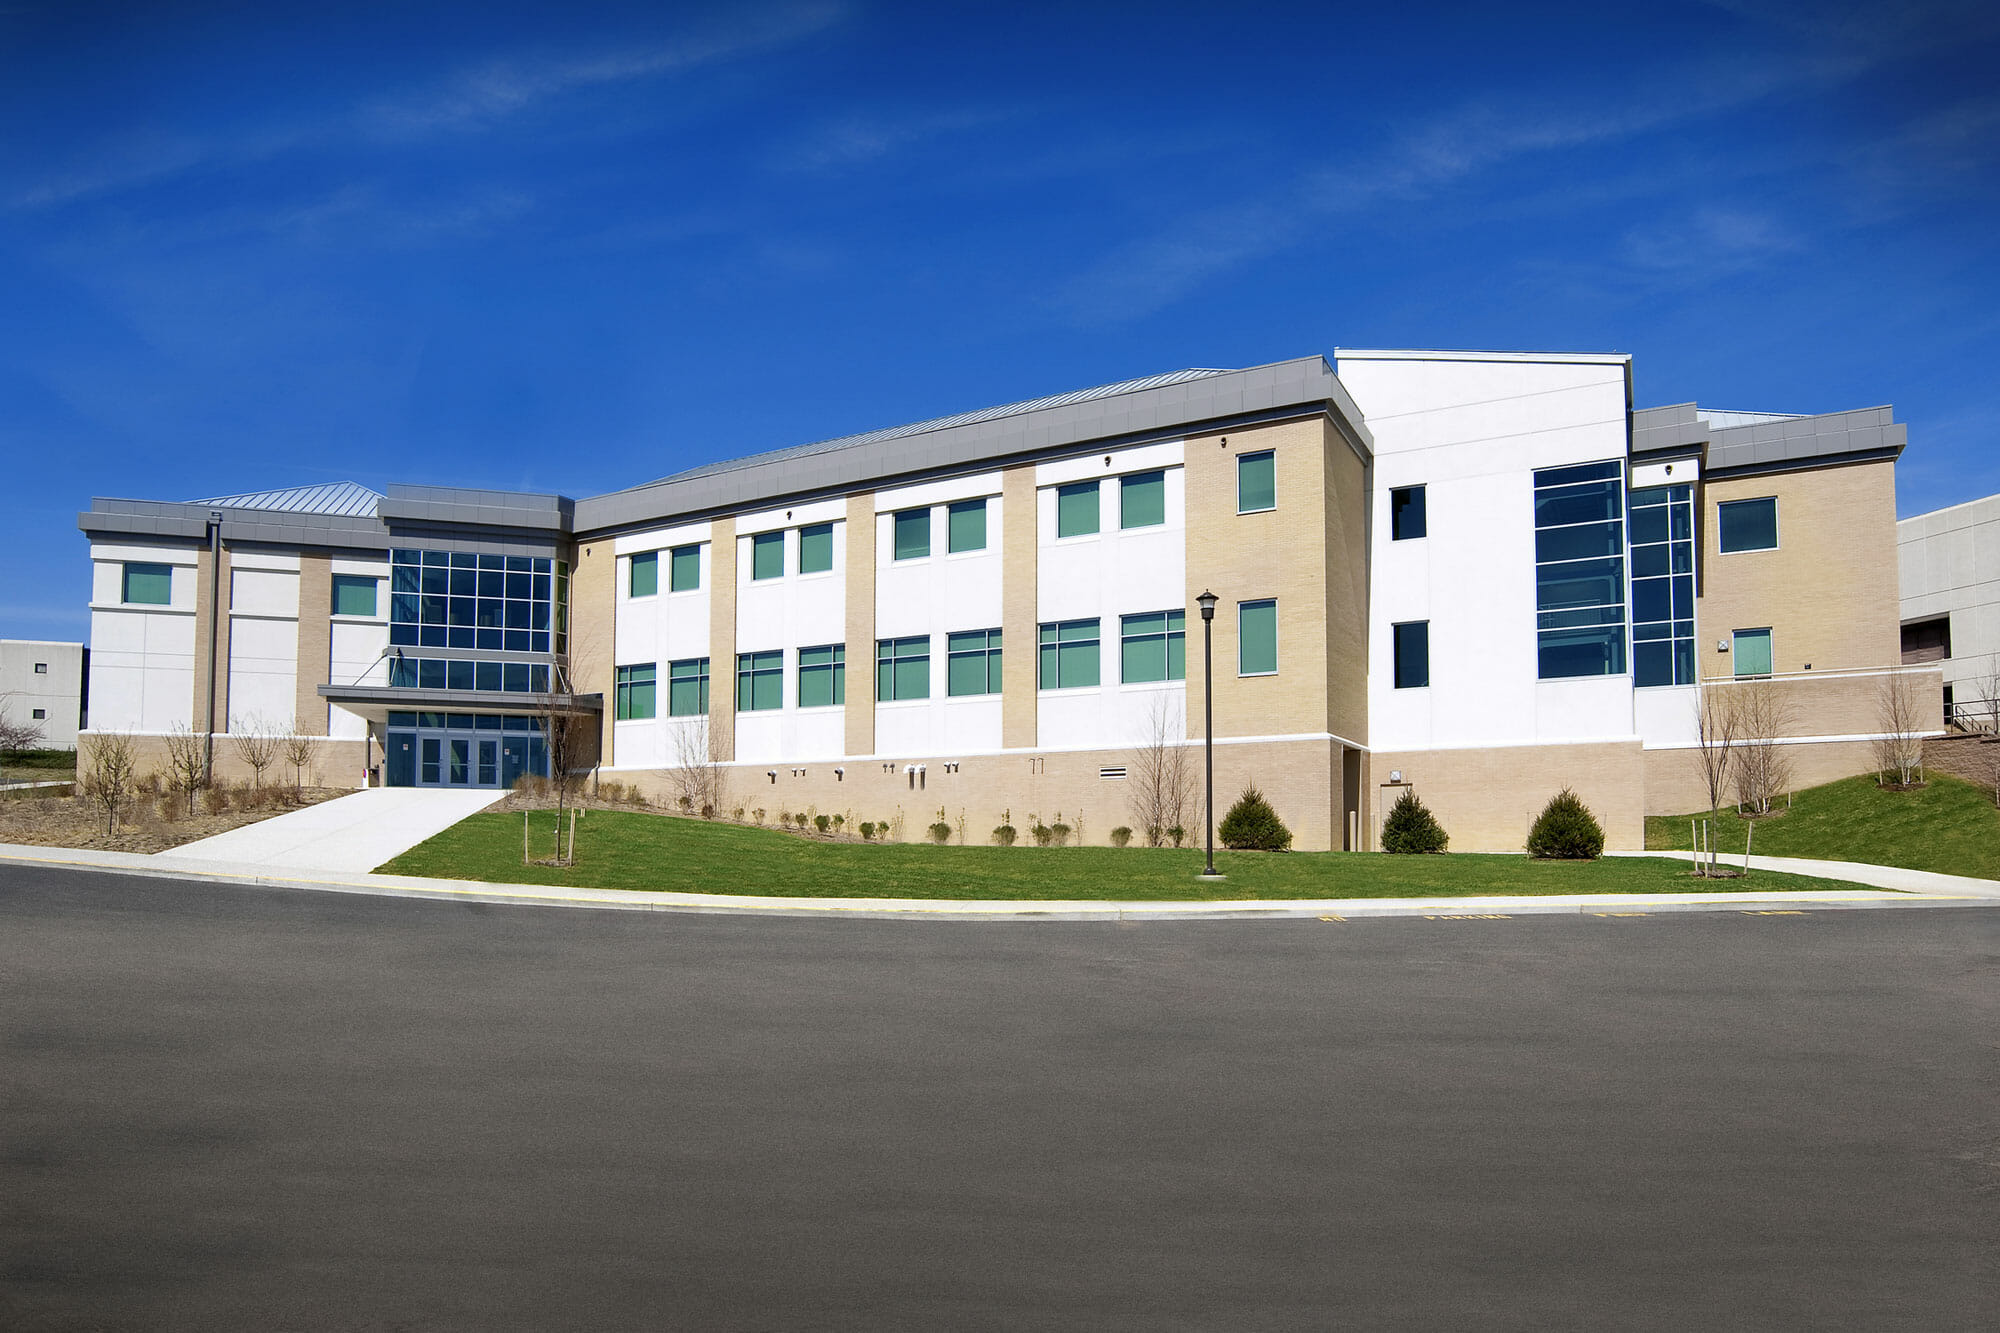 PARIC was in charge of constructing a health and life sciences building at East Central College